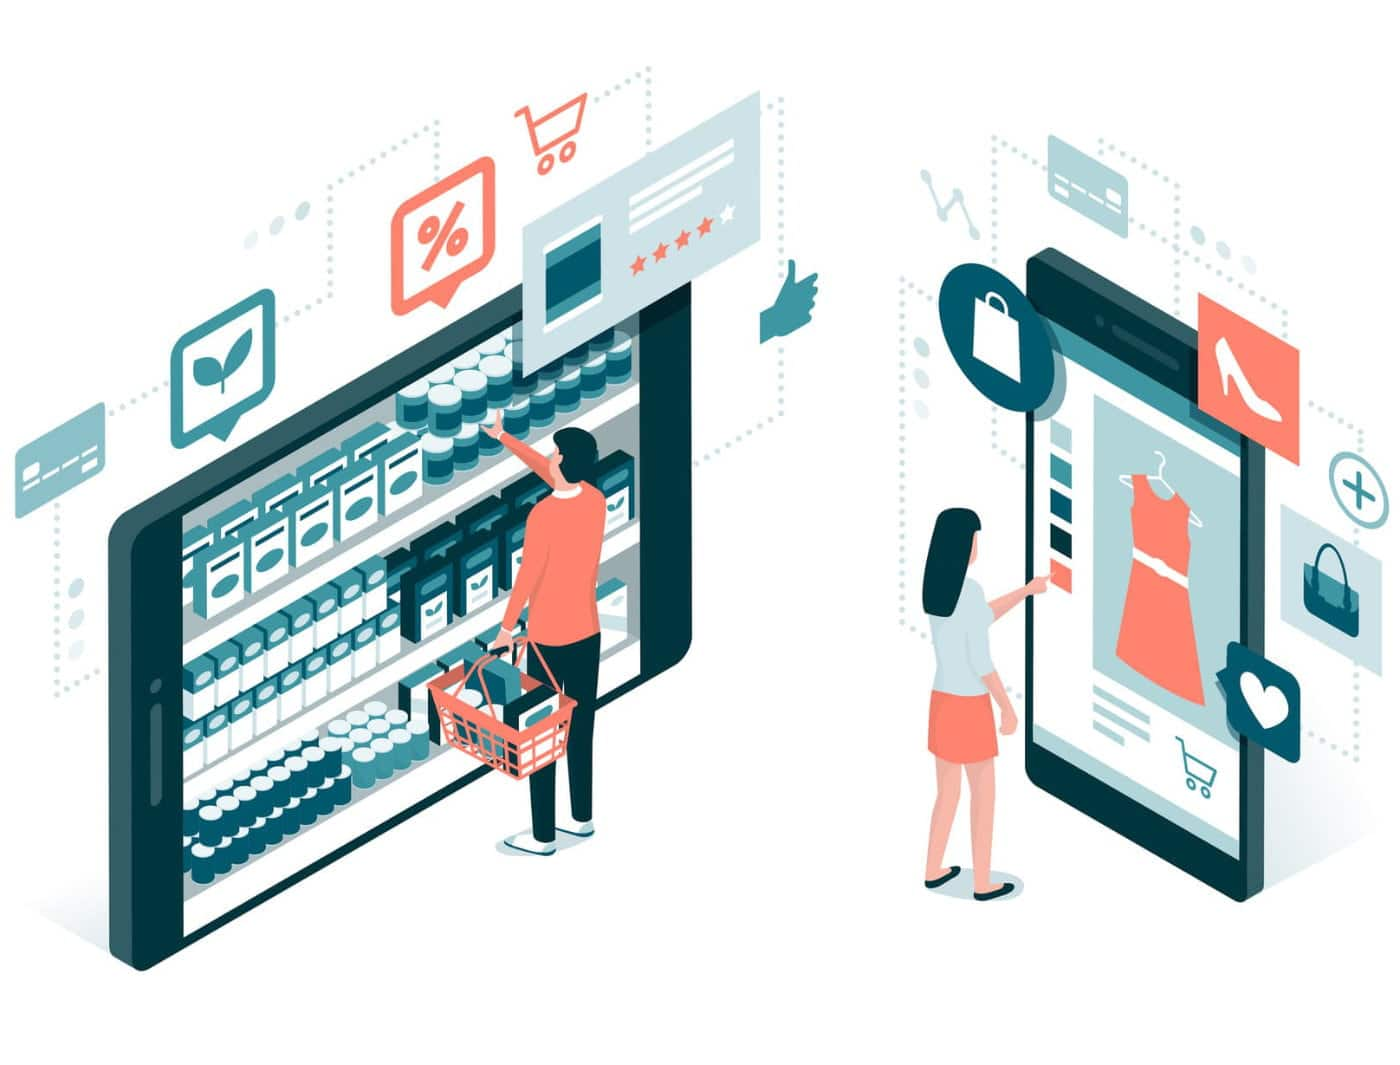 Webstore shopping experience